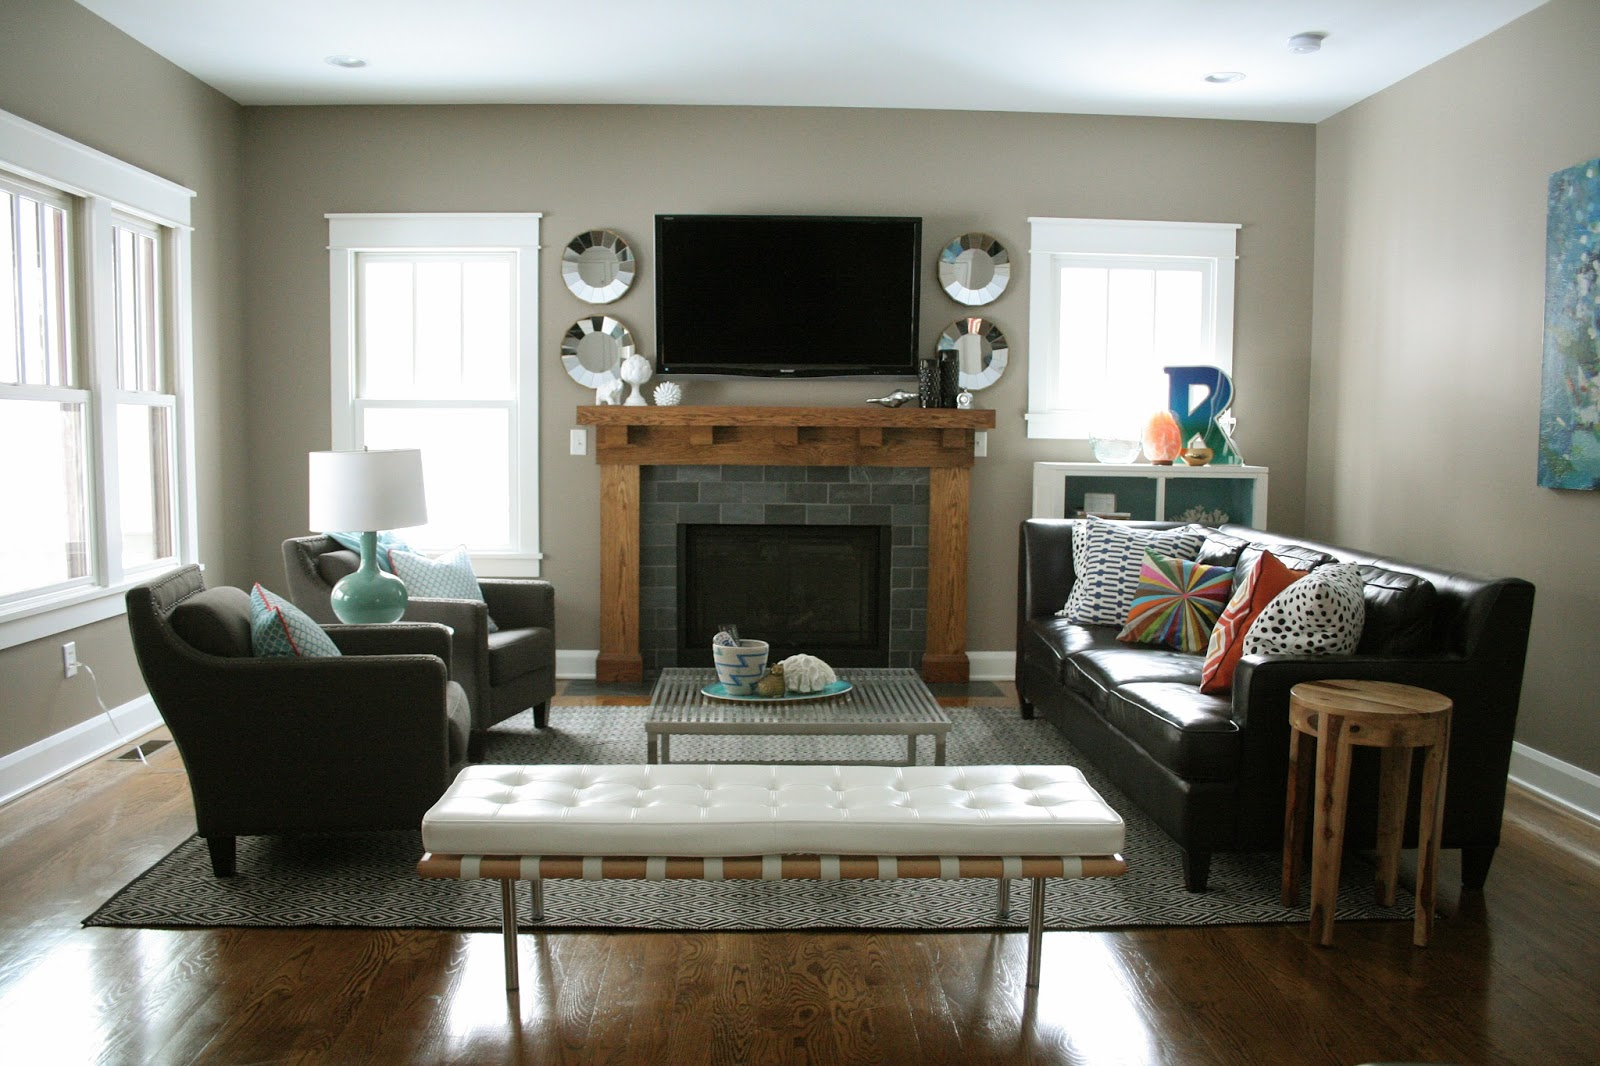 Fullsize Of Large Living Room Furniture Placement